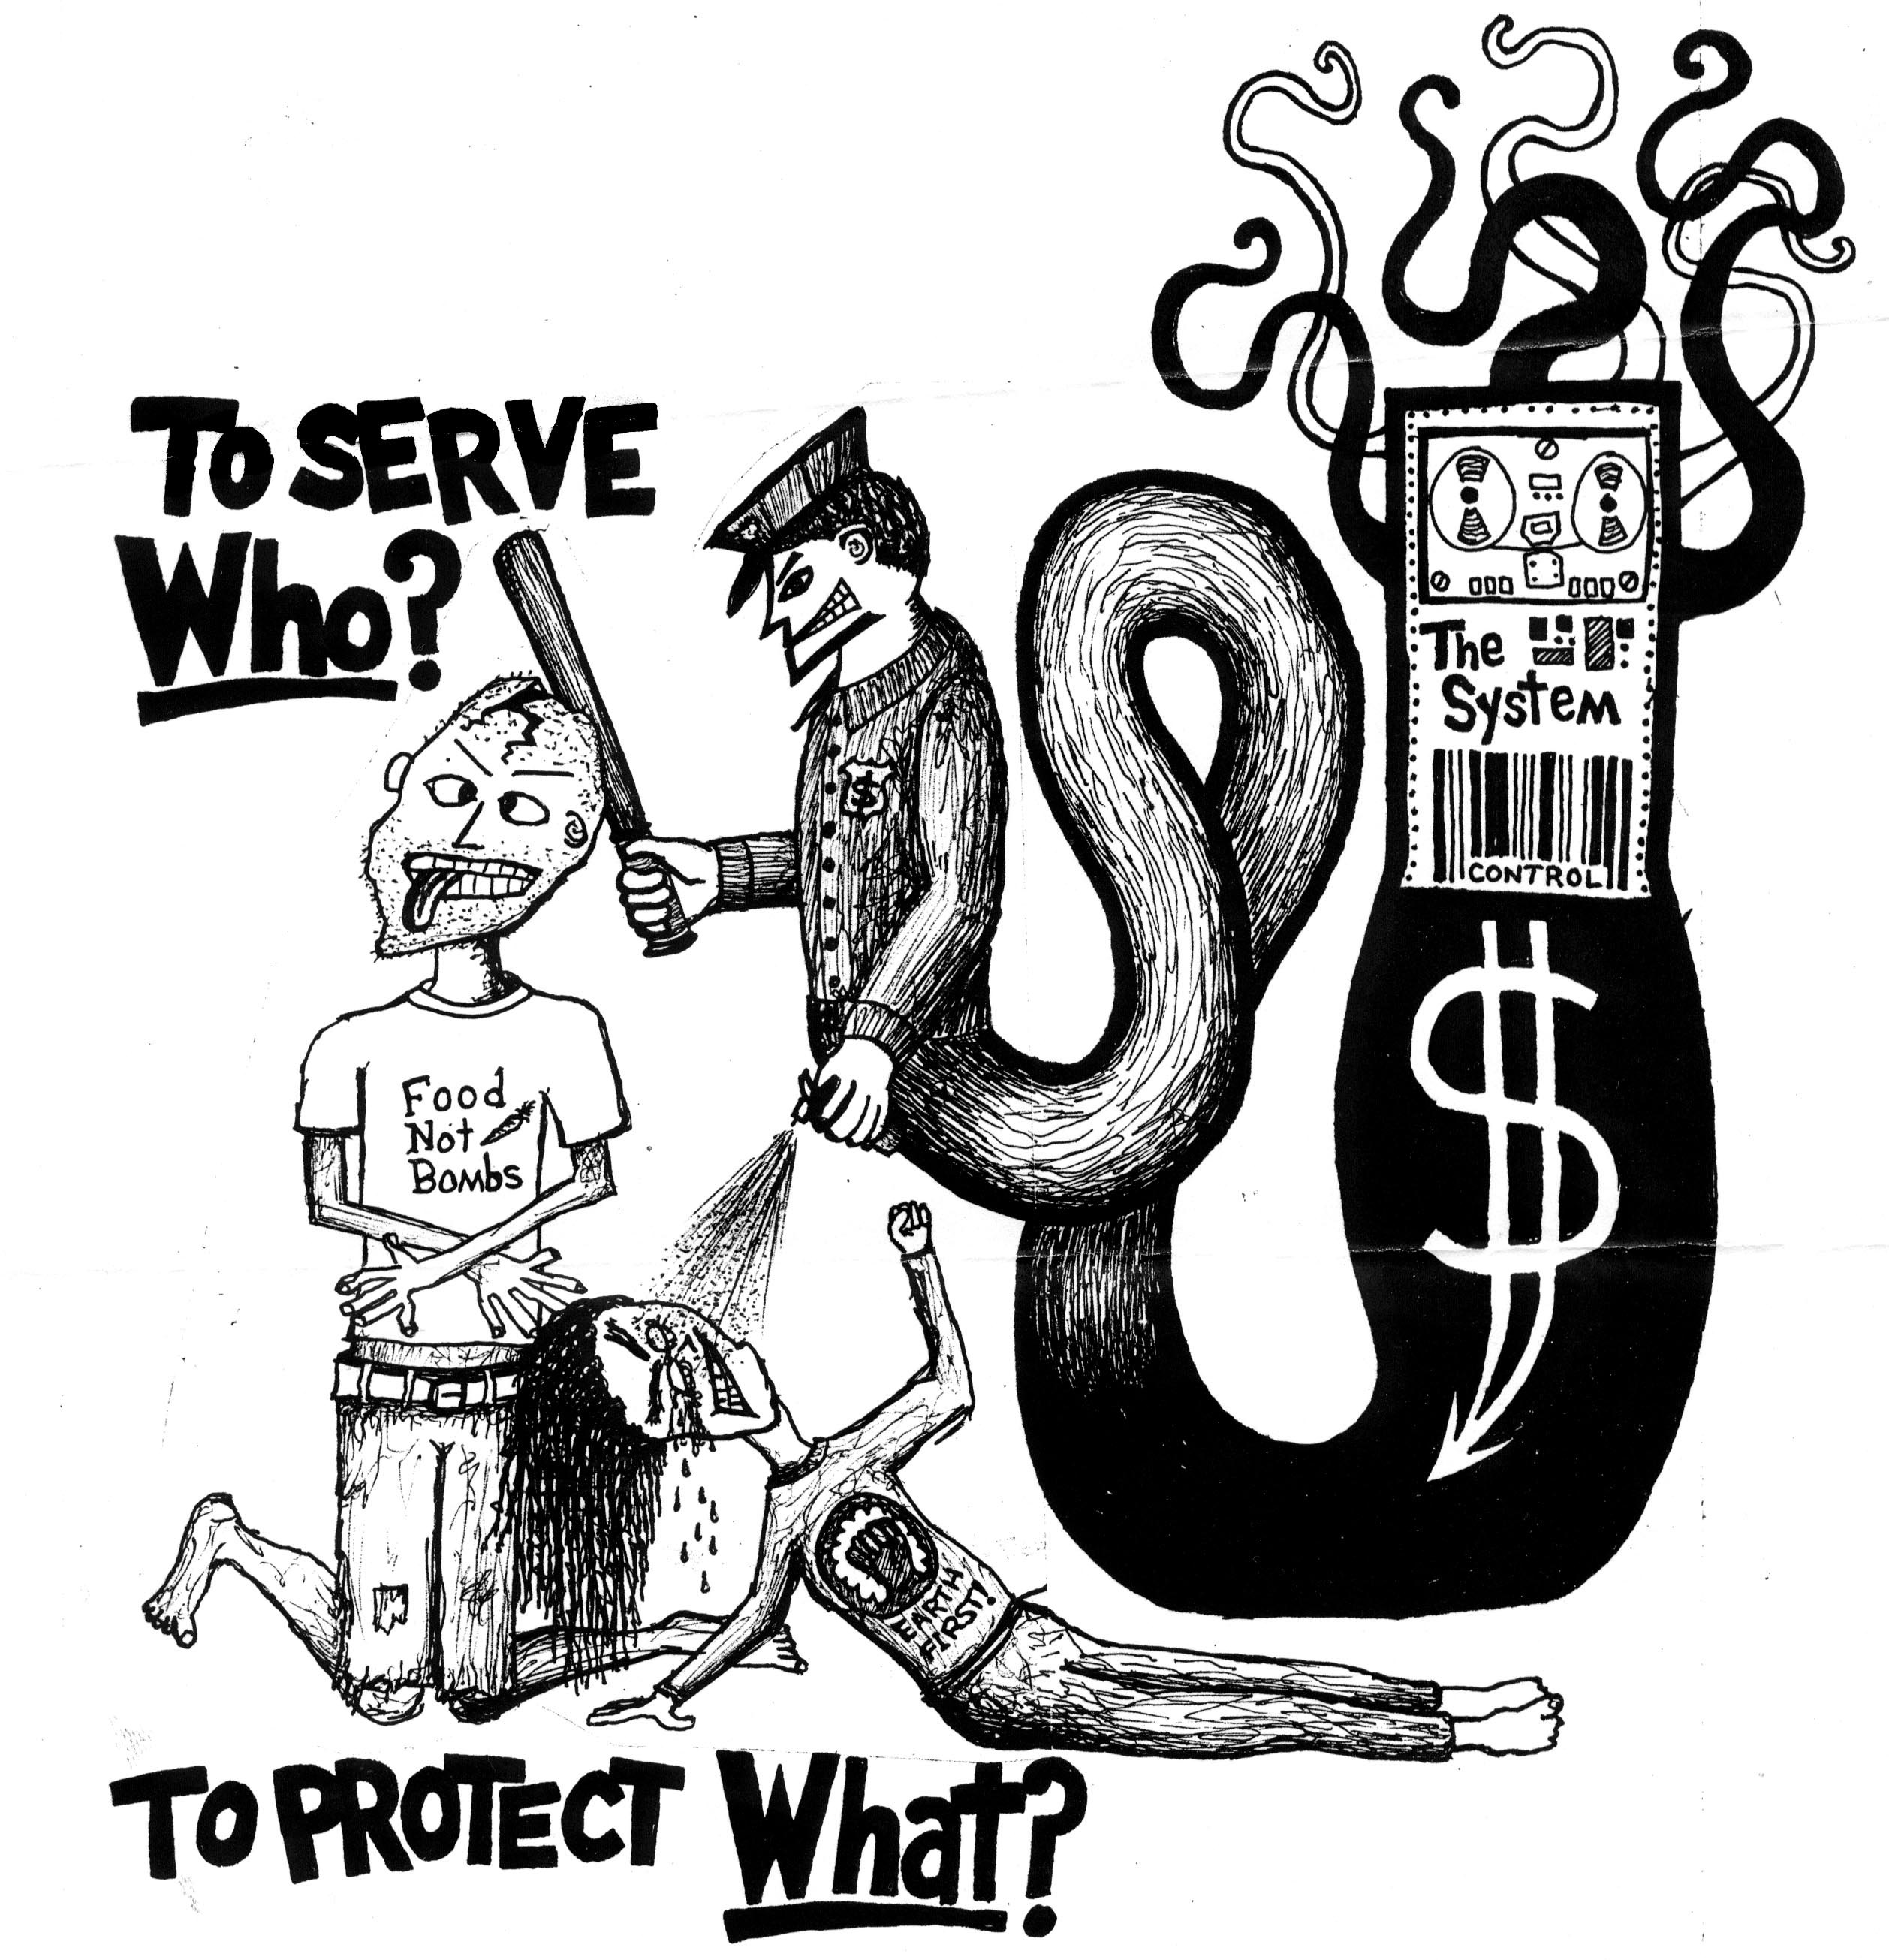 To Serve Who? To Protect What?, by Radical Graphics ~ Anarchist.